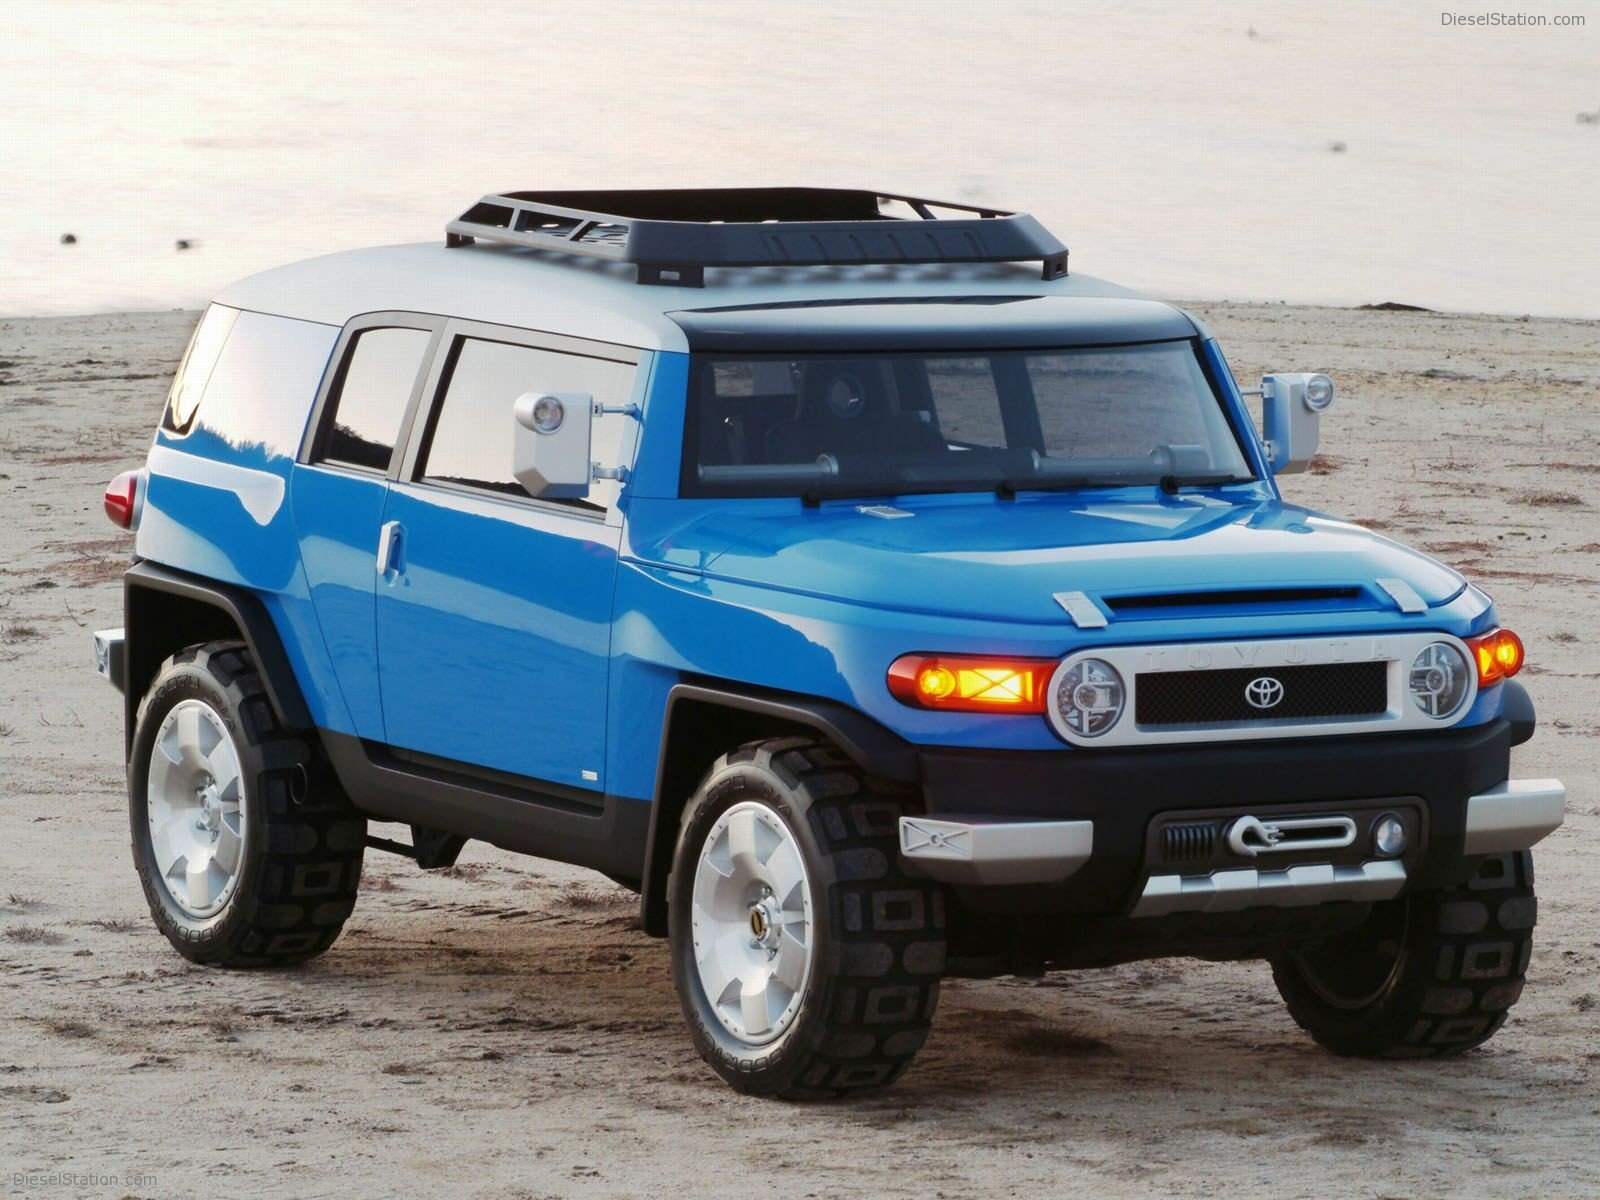 Toyota FJ Cruiser Exotic Car Wallpapers 002 of 11 1600x1200